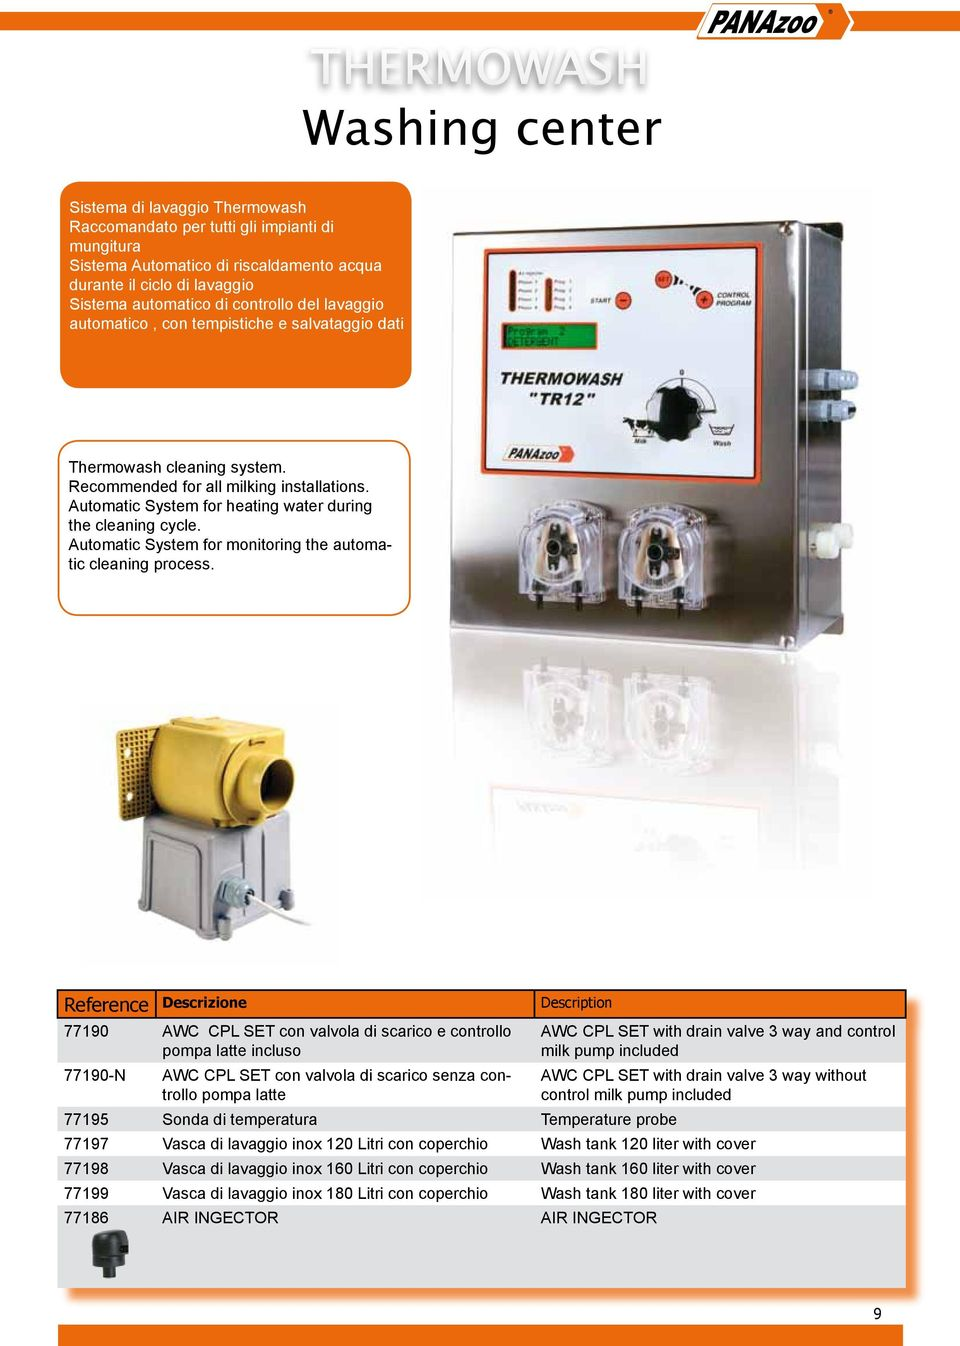 Automatic System for heating water during the cleaning cycle. Automatic System for monitoring the automatic cleaning process.